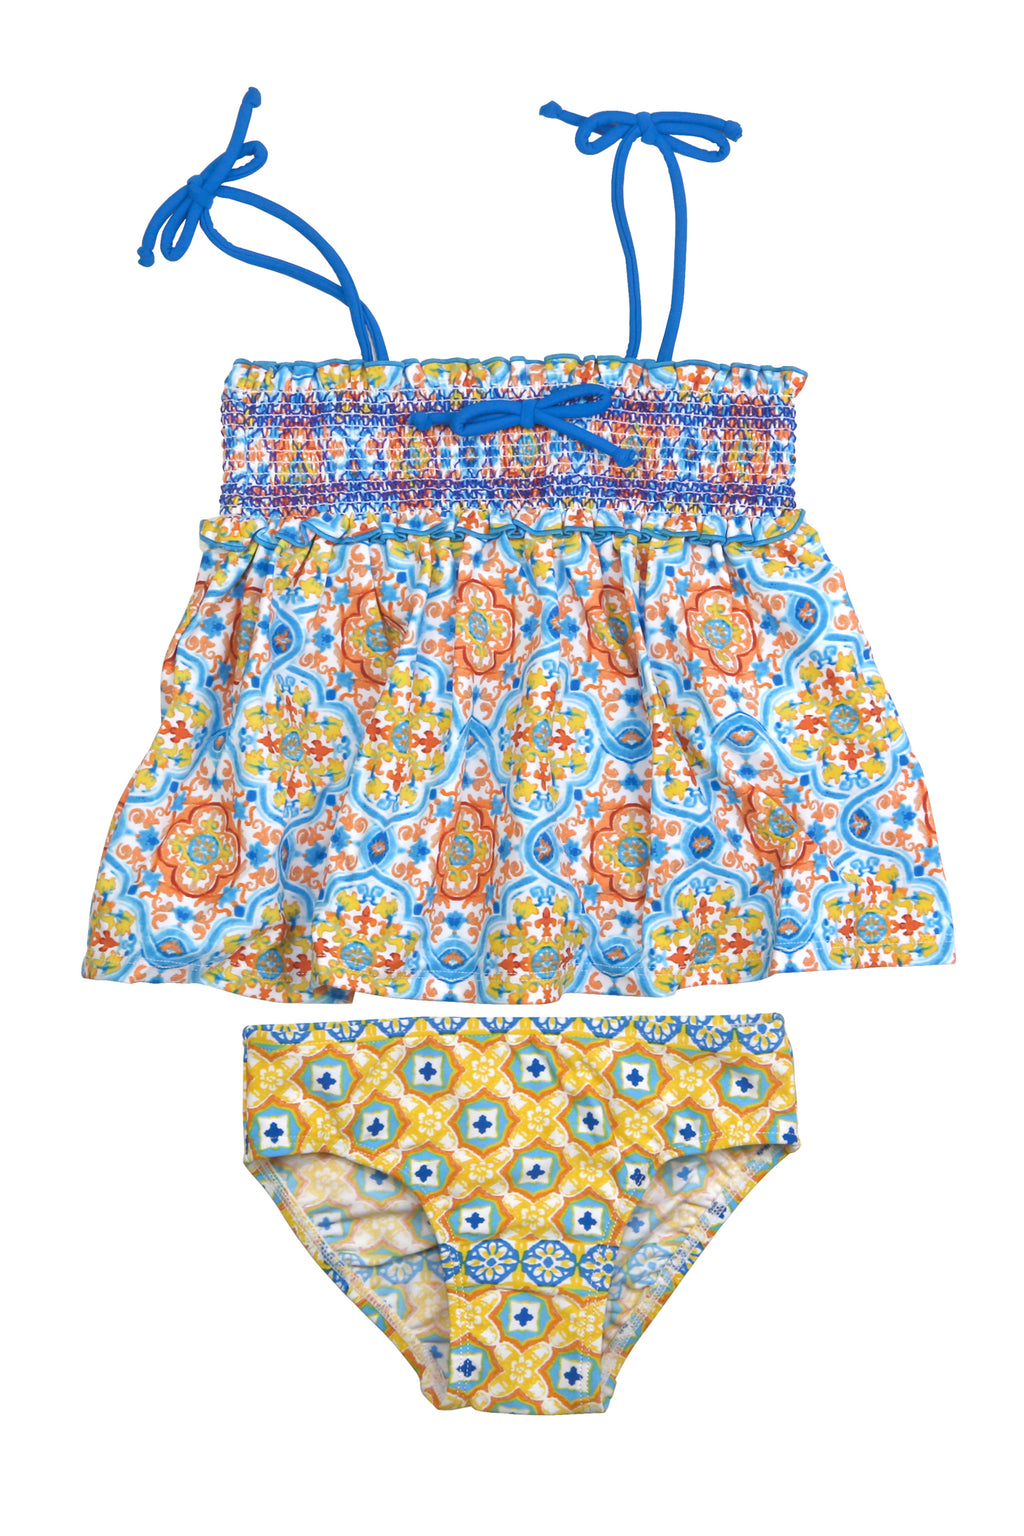 Spanish Tile Smocked Tankini Set, yellow